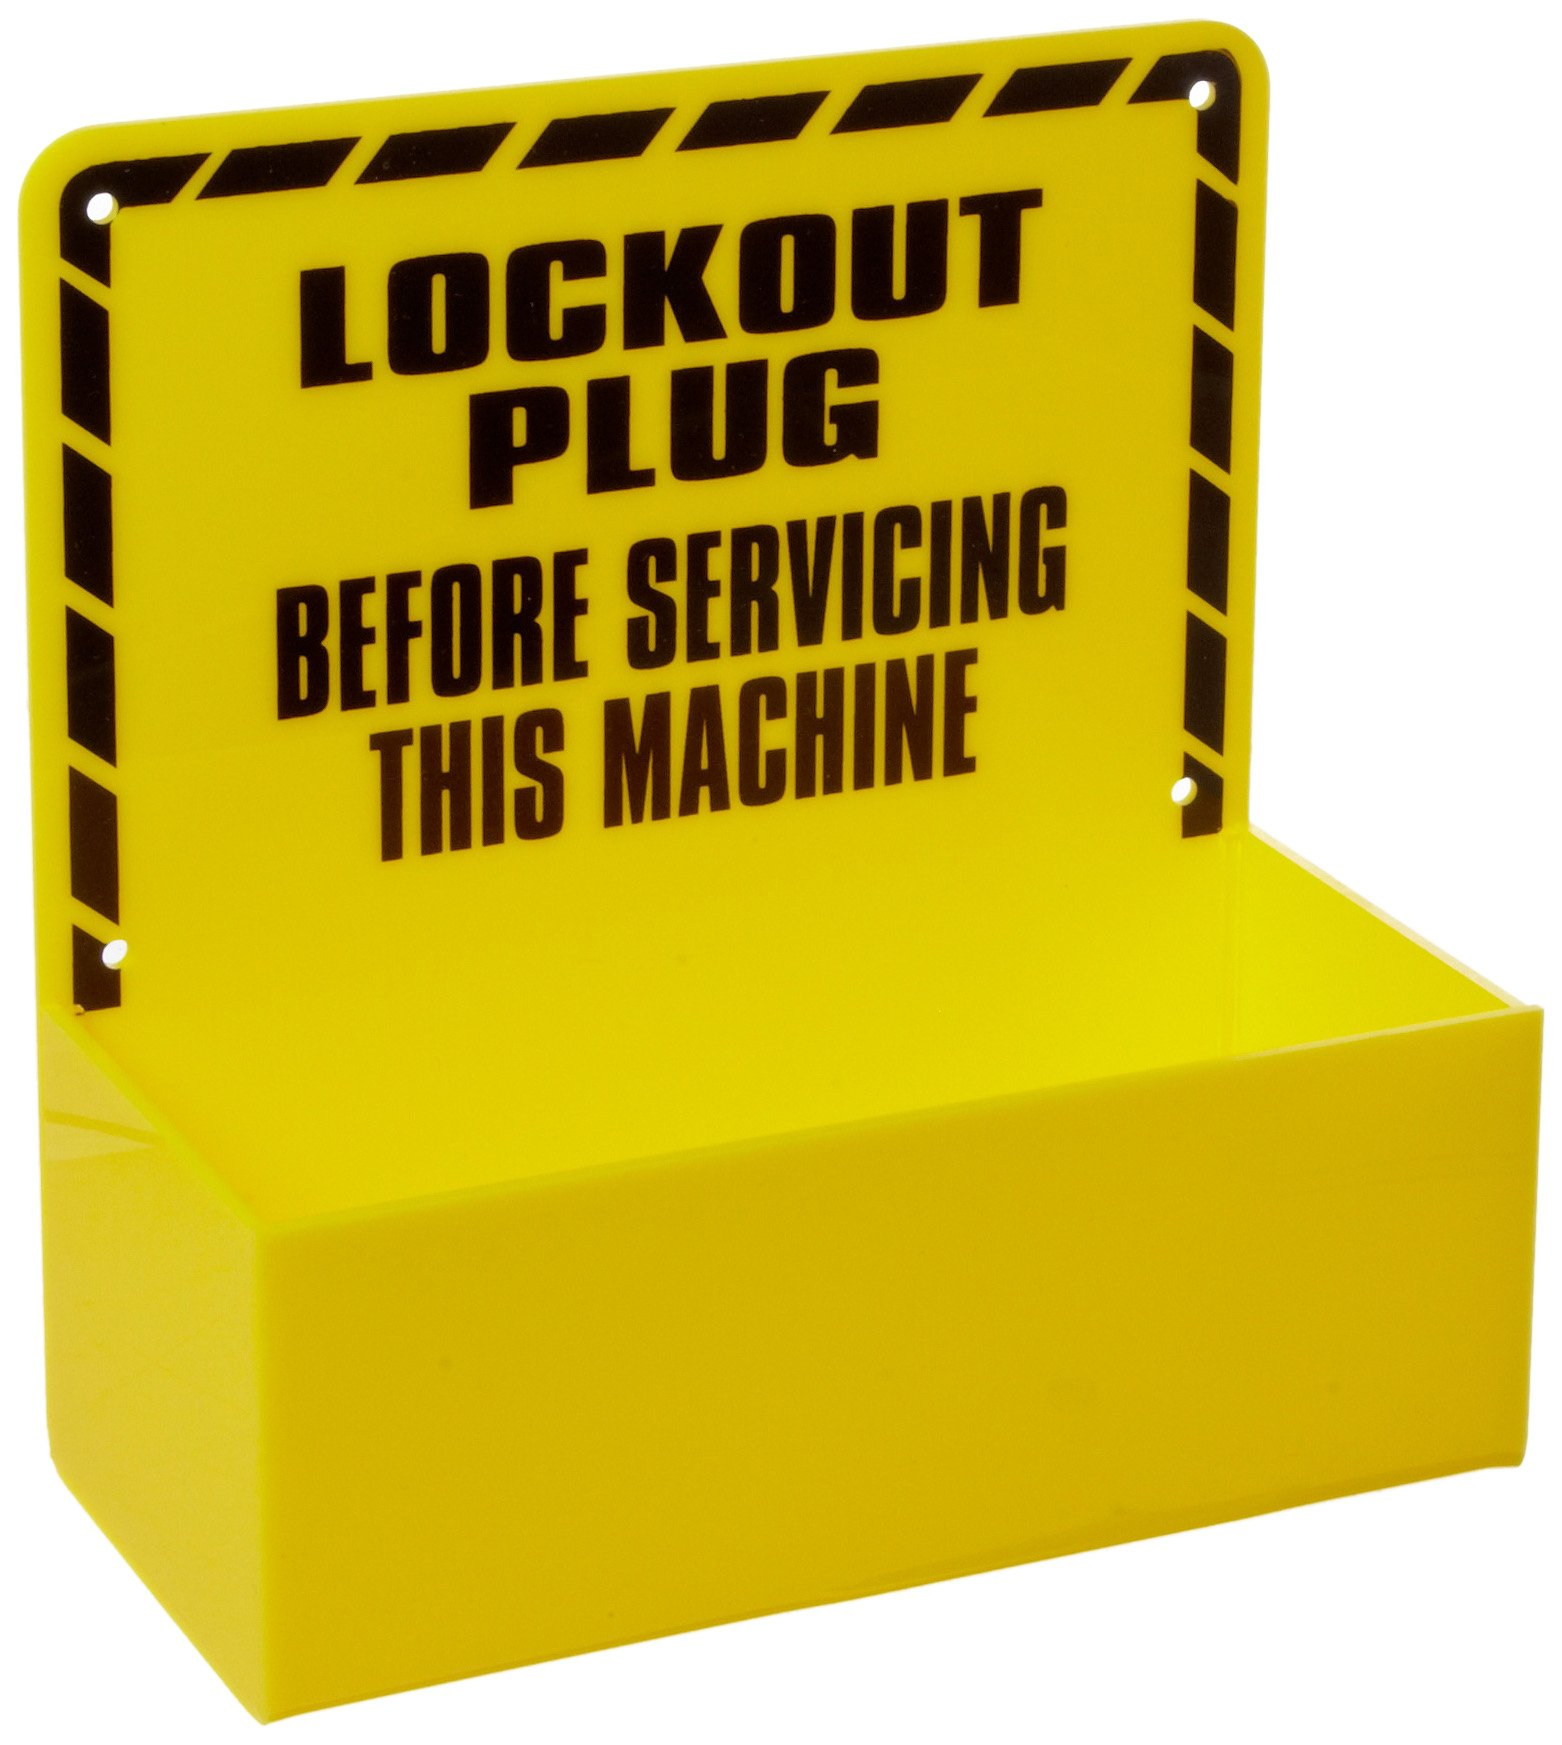 Brady Prinzing Plug Lockout Station, Legend ''Lockout Plug Before Servicing This Machine'', Includes Padlocks and Devices